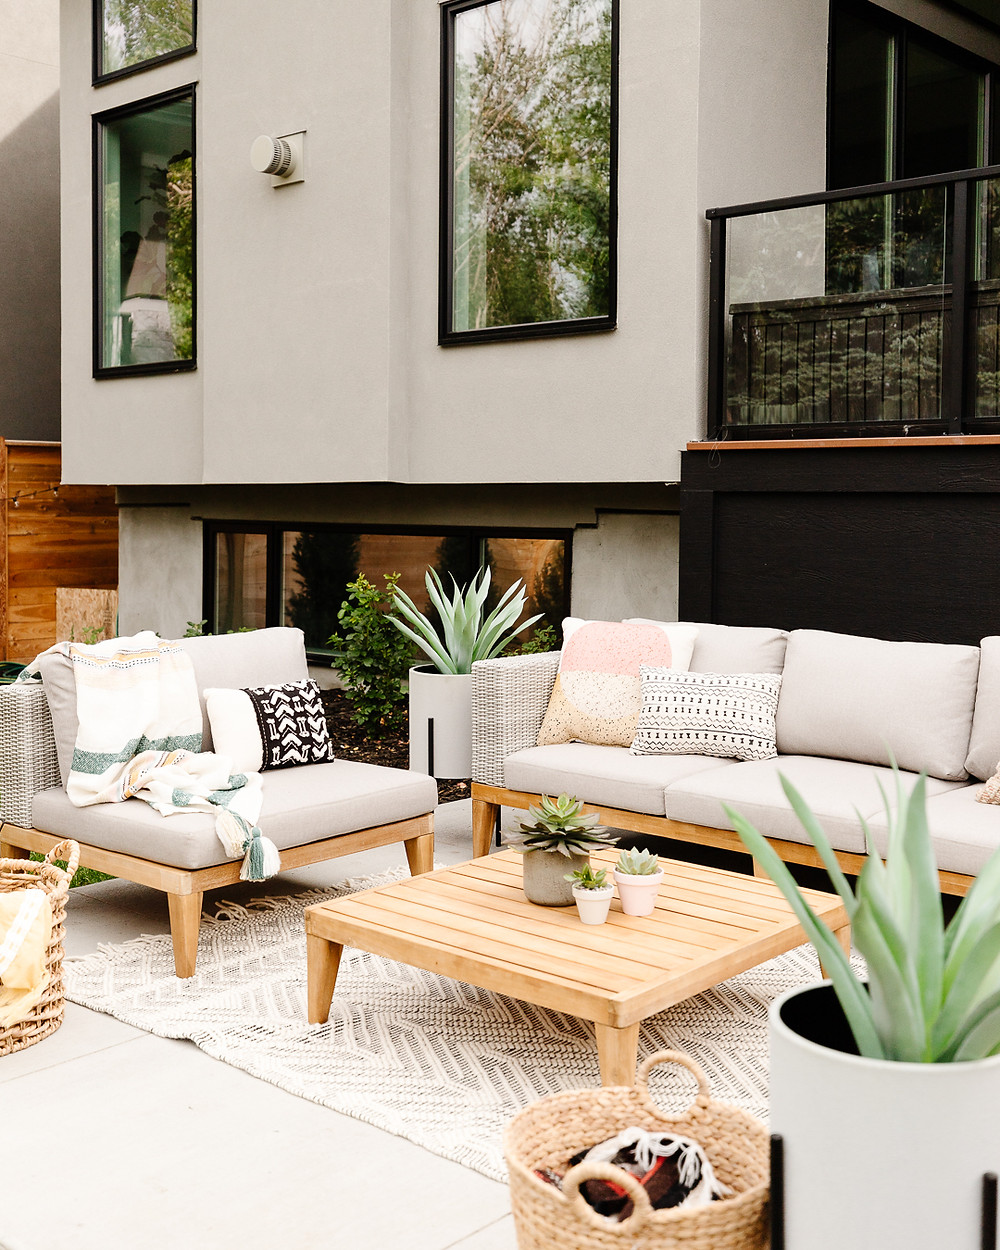 Modern outdoor wicker sofa with wood accents and beige cushions black and white area rug chair with wood accent and striped throw blanket wood accent table with succulent pots wicker basket with blankets patterned accent pillows potted succulents plant backyard concrete patio stucco exterior with black windows raised deck with glass railing